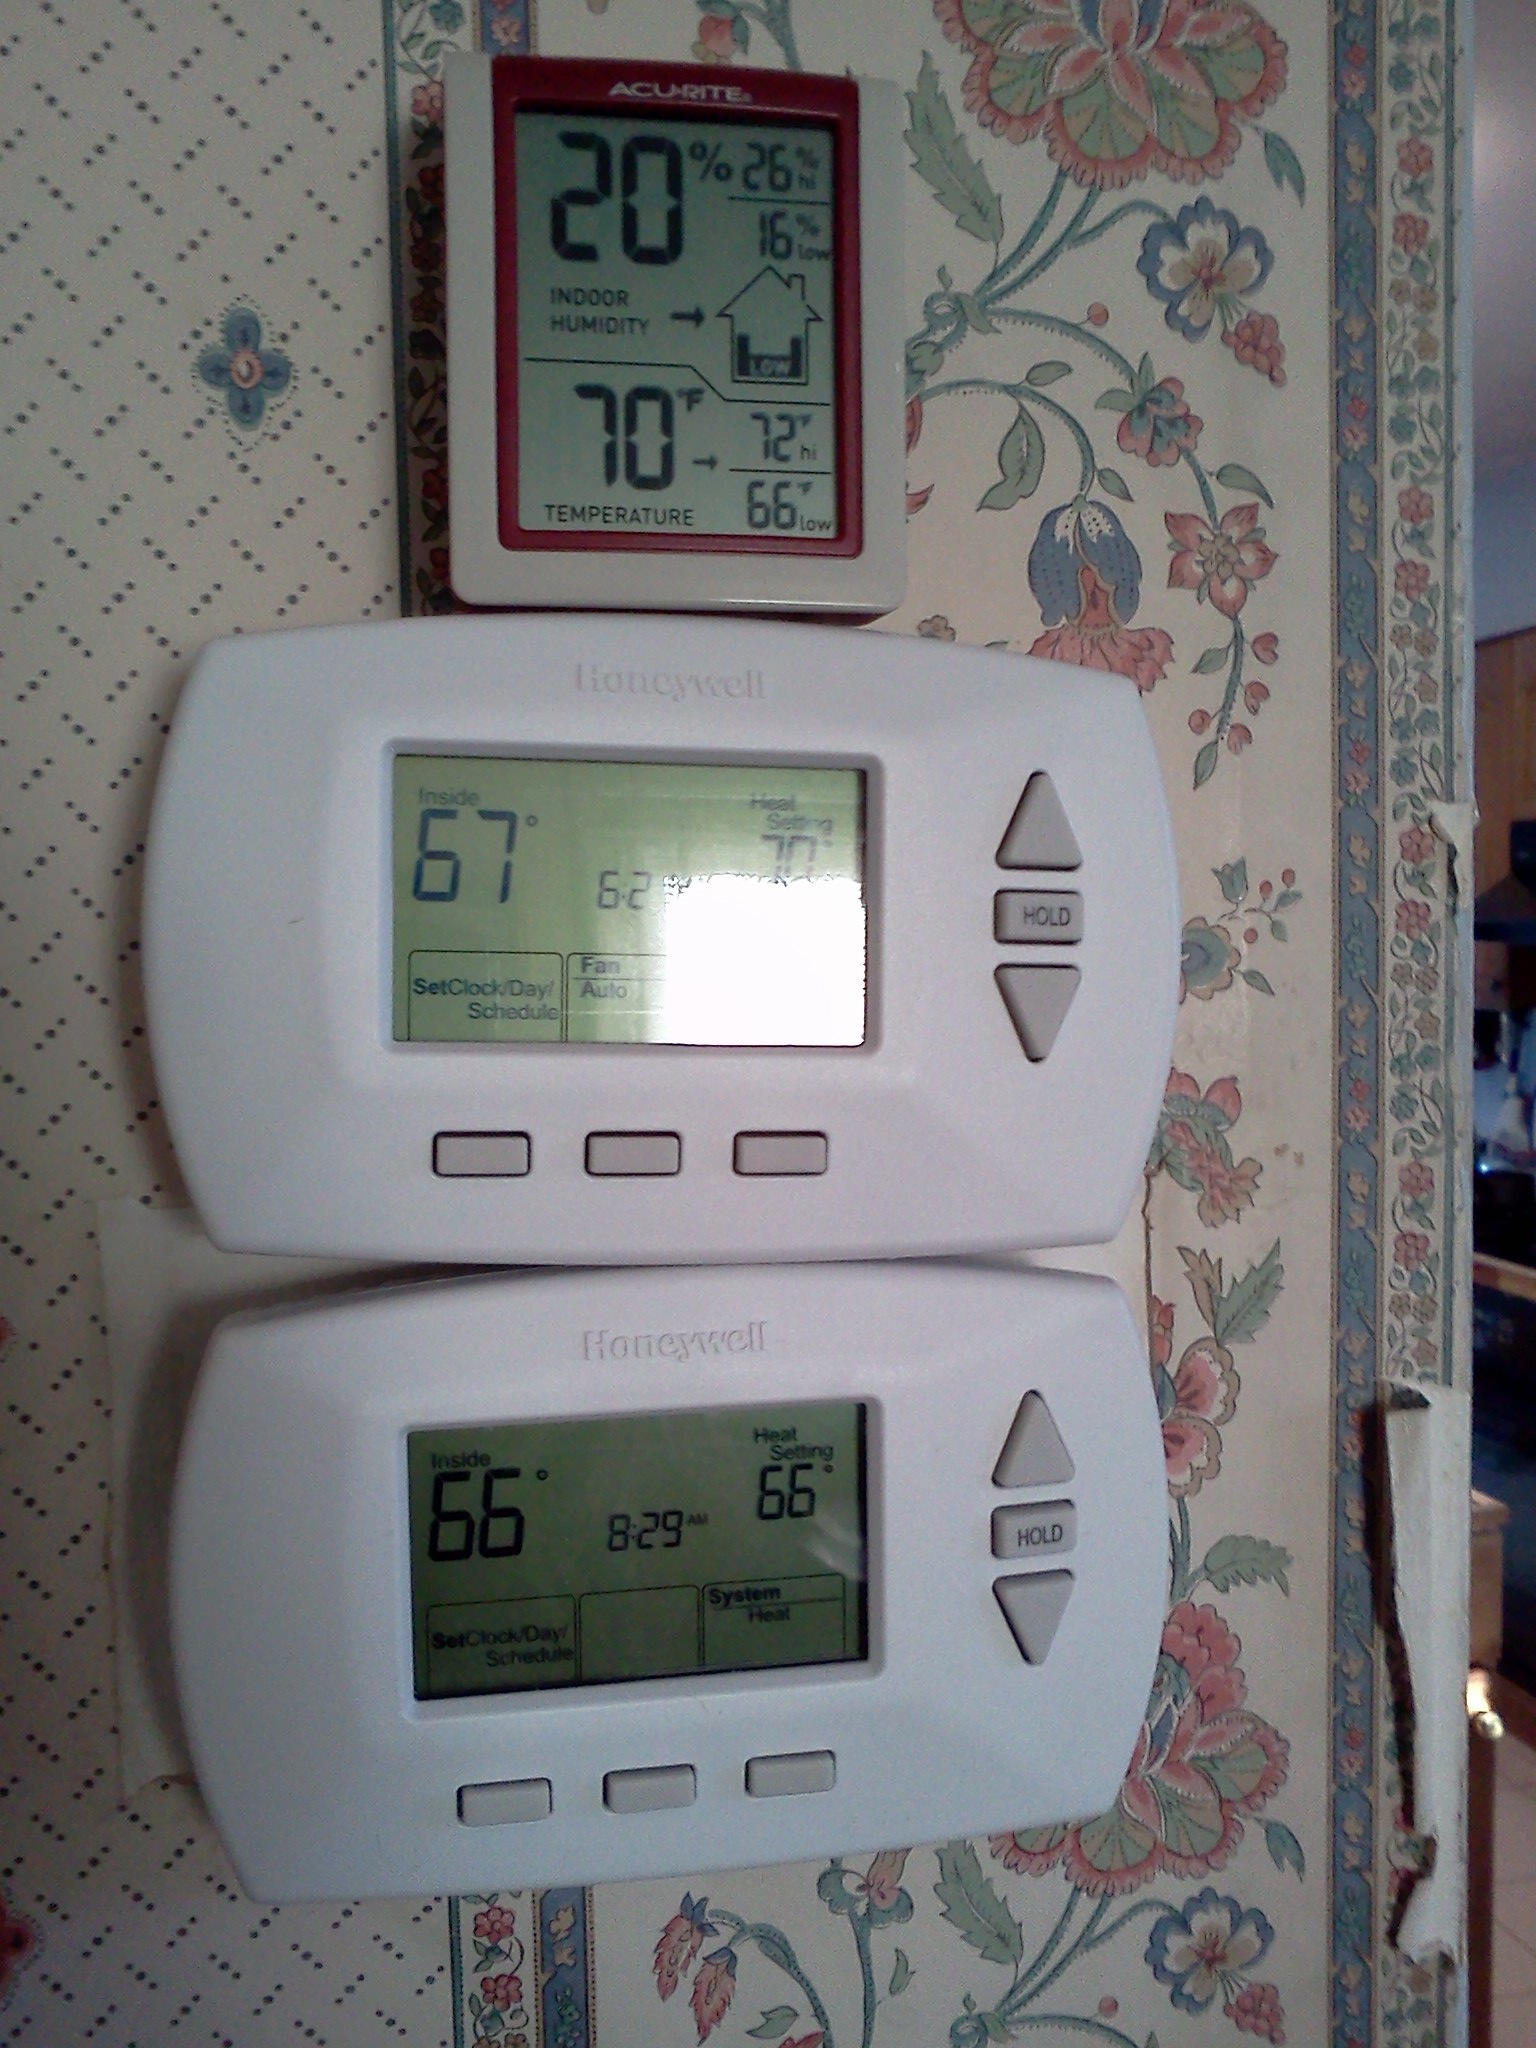 Mnl 1641 Manual For A Rth 6350 Honeywell 2019 Ebook Library Rth6350d Wiring Diagram Thermostat Accuracy Heating Help The Wall Img1131 0b Rth3100c1002